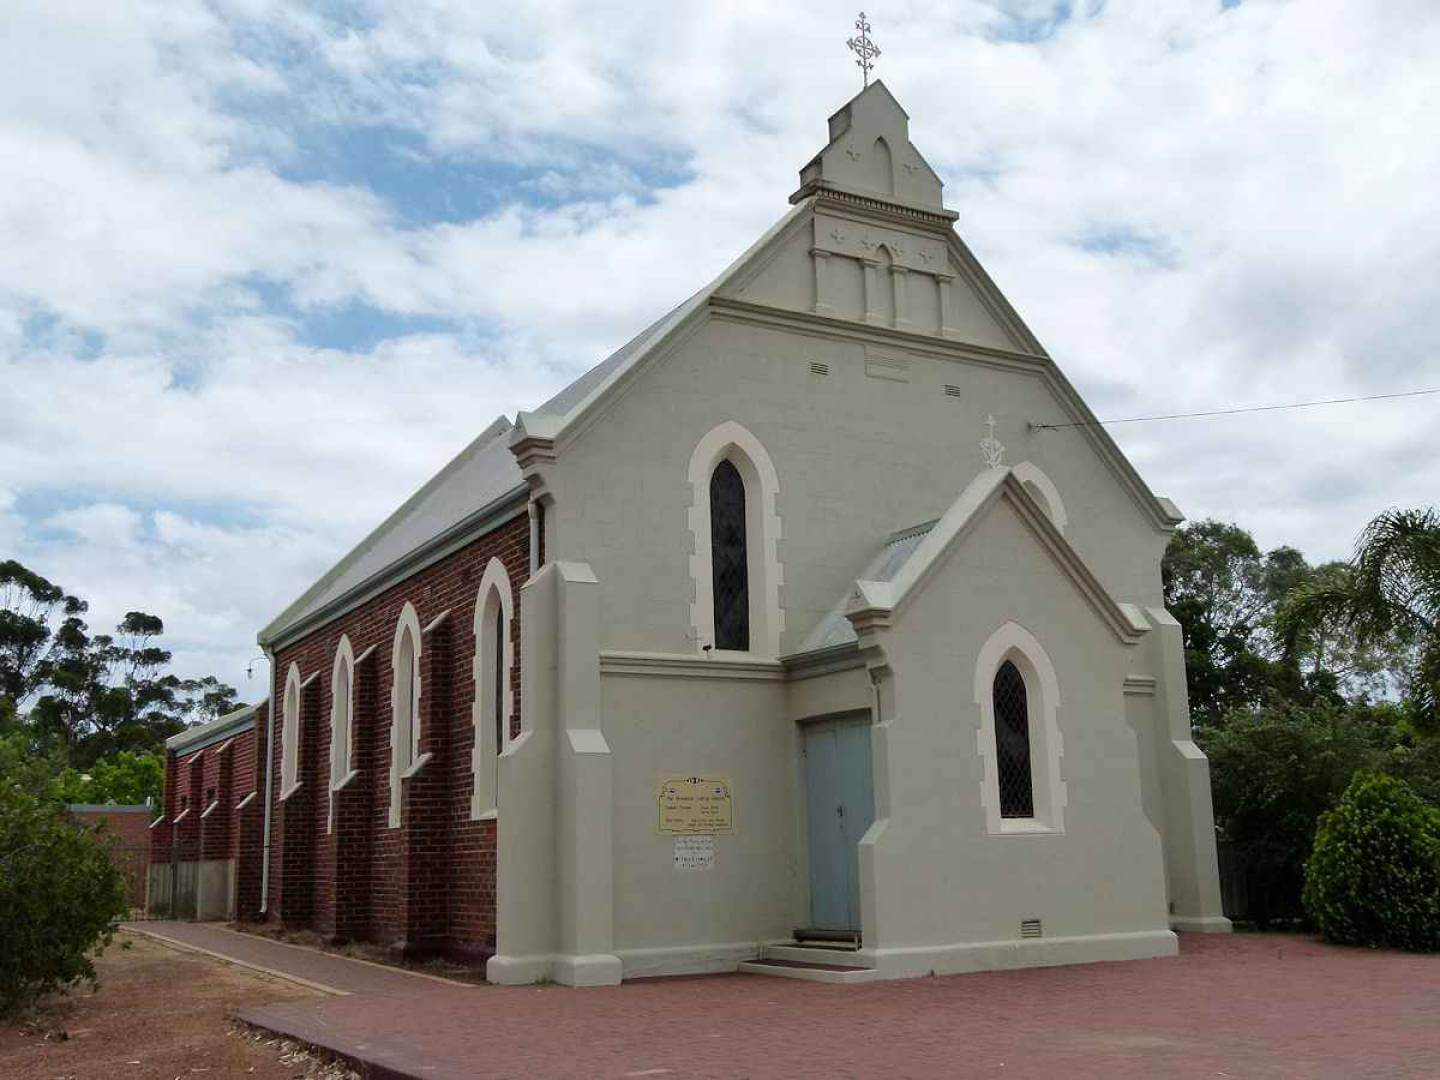 Brookton Uniting Church